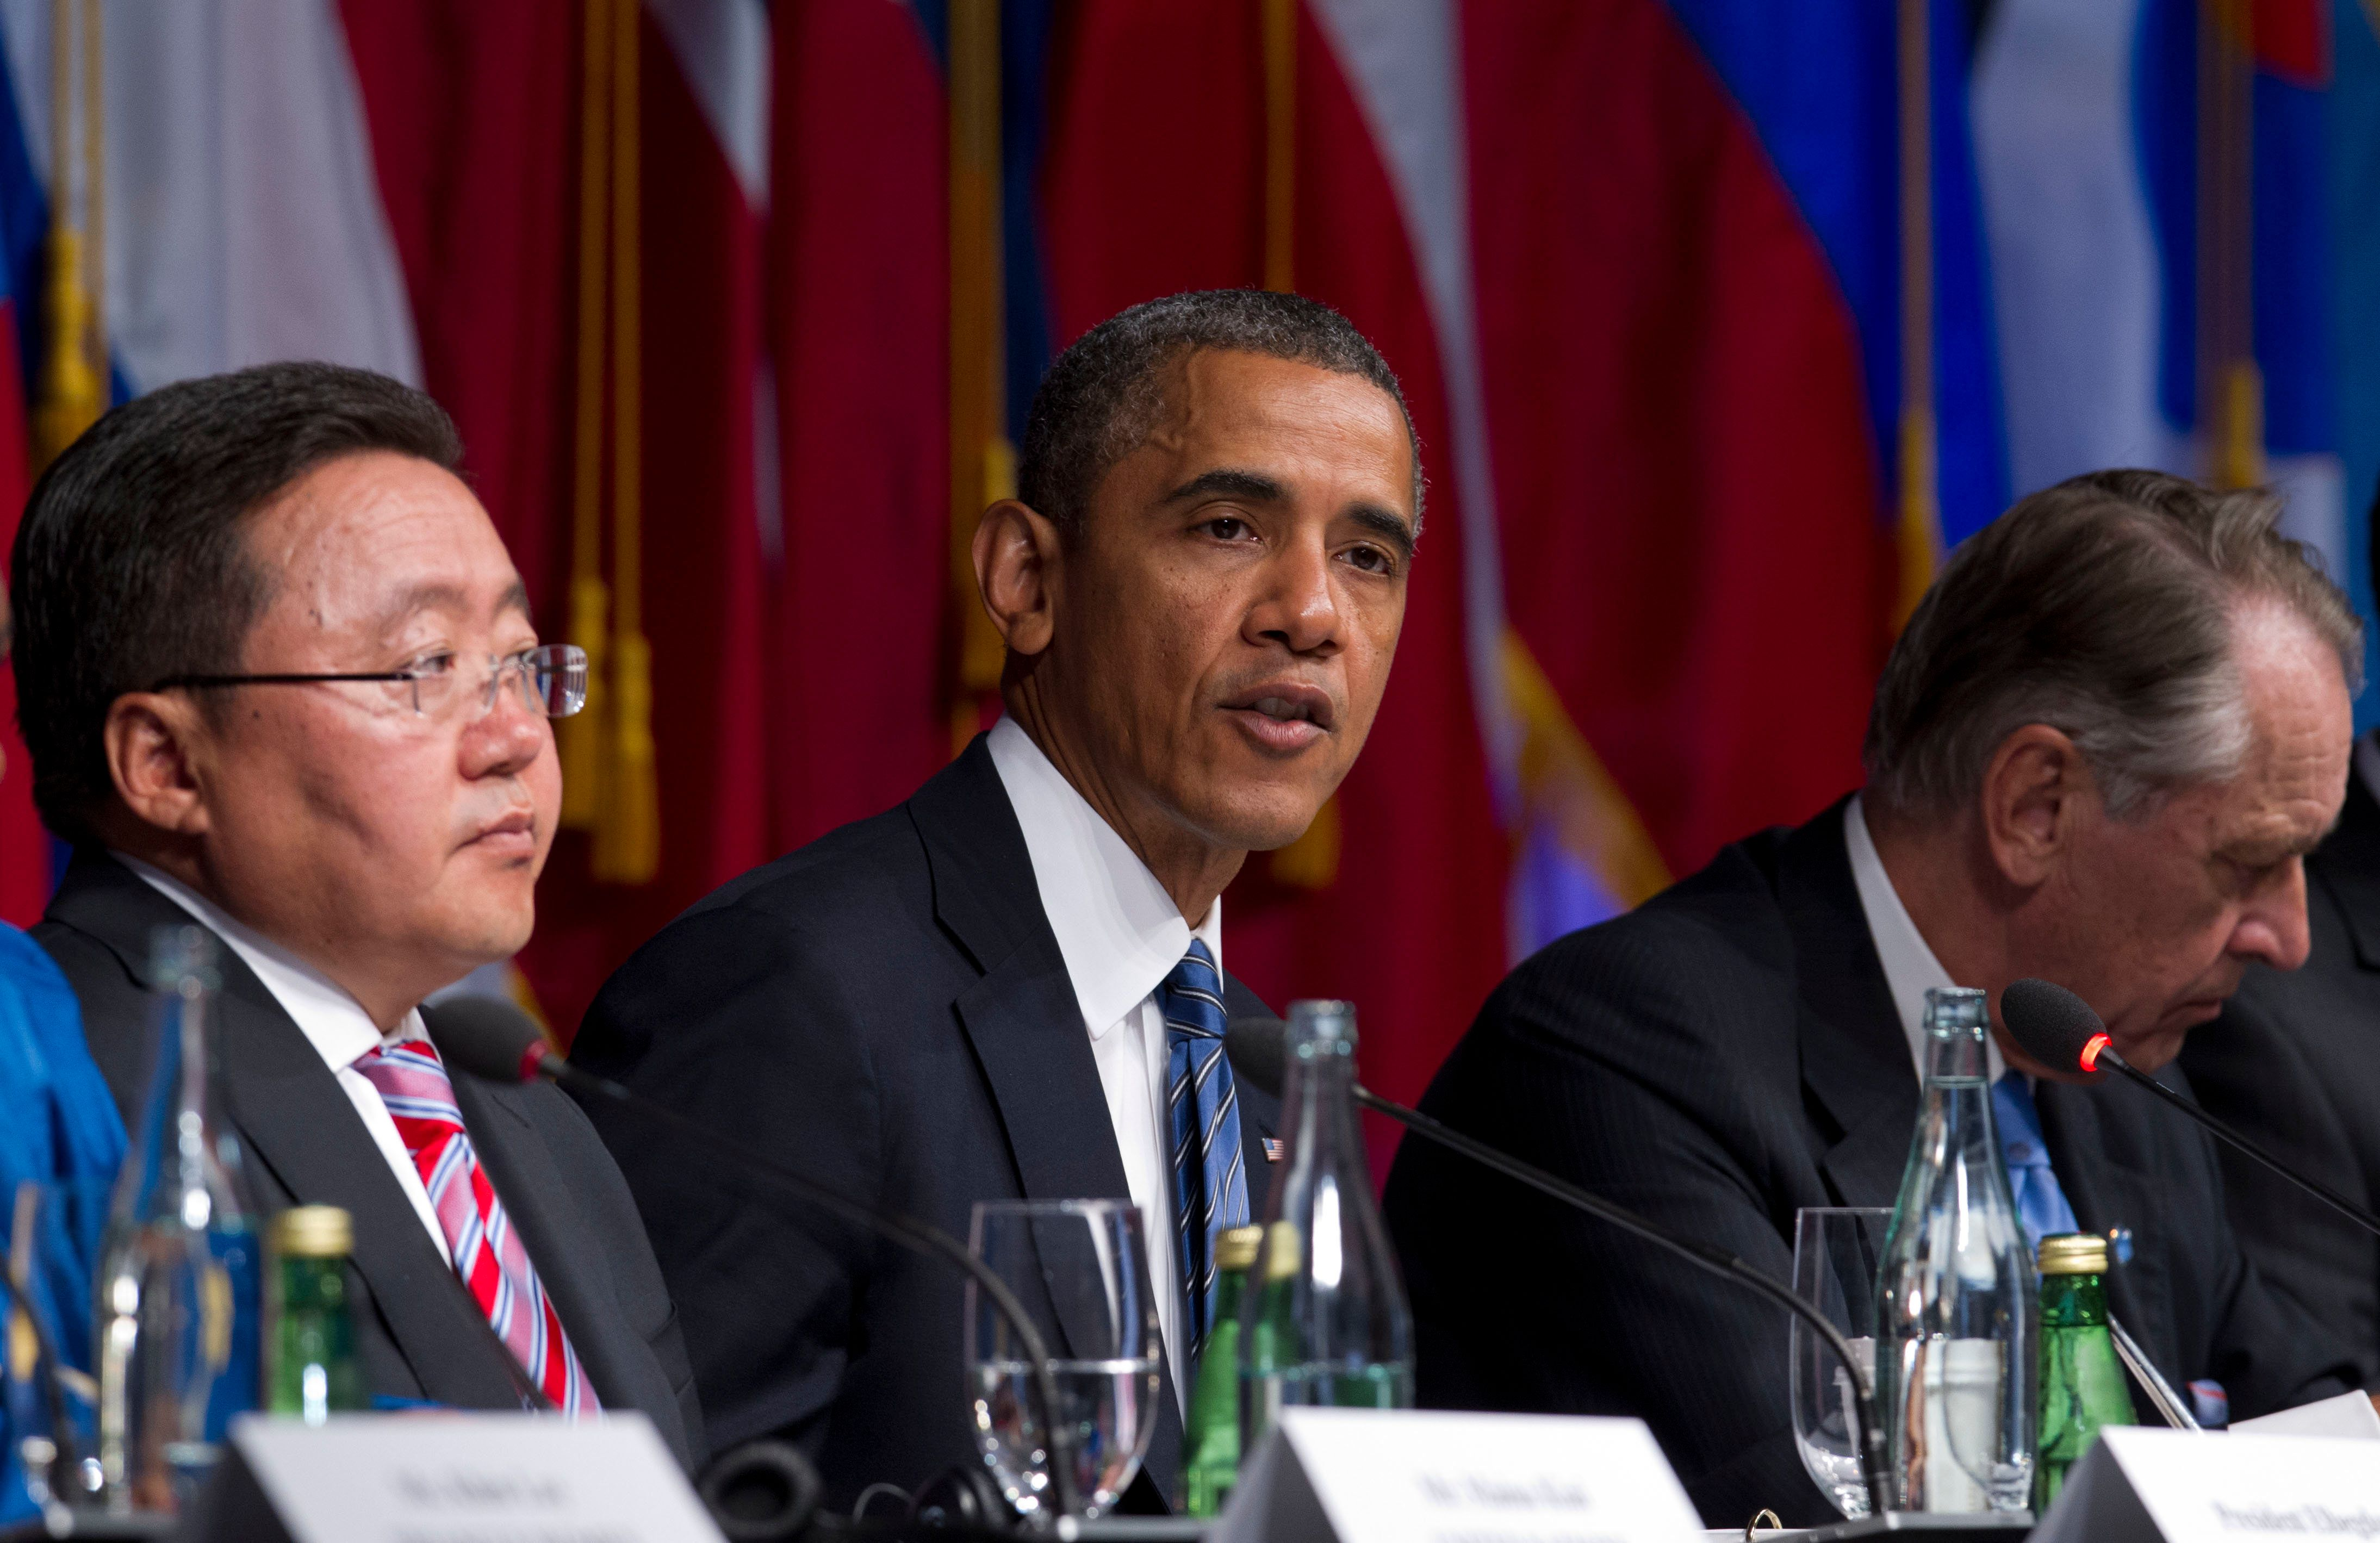 NEW YORK, NY - SEPTEMBER 23: (AFP OUT) U.S. President Barack Obama speaks during the International Civil Society event on September 23, 2013 in New York City. Both Obama and Jonathan expressed condolences to Kenya for the attacks in a Nairobi mall with Obama saying it was 'terrible outrage' and said the United States was providing all the cooperation it could to Kenya. Both are in town for the United Nations General Assembly. (Photo by Jin Lee-Pool/Getty Images)